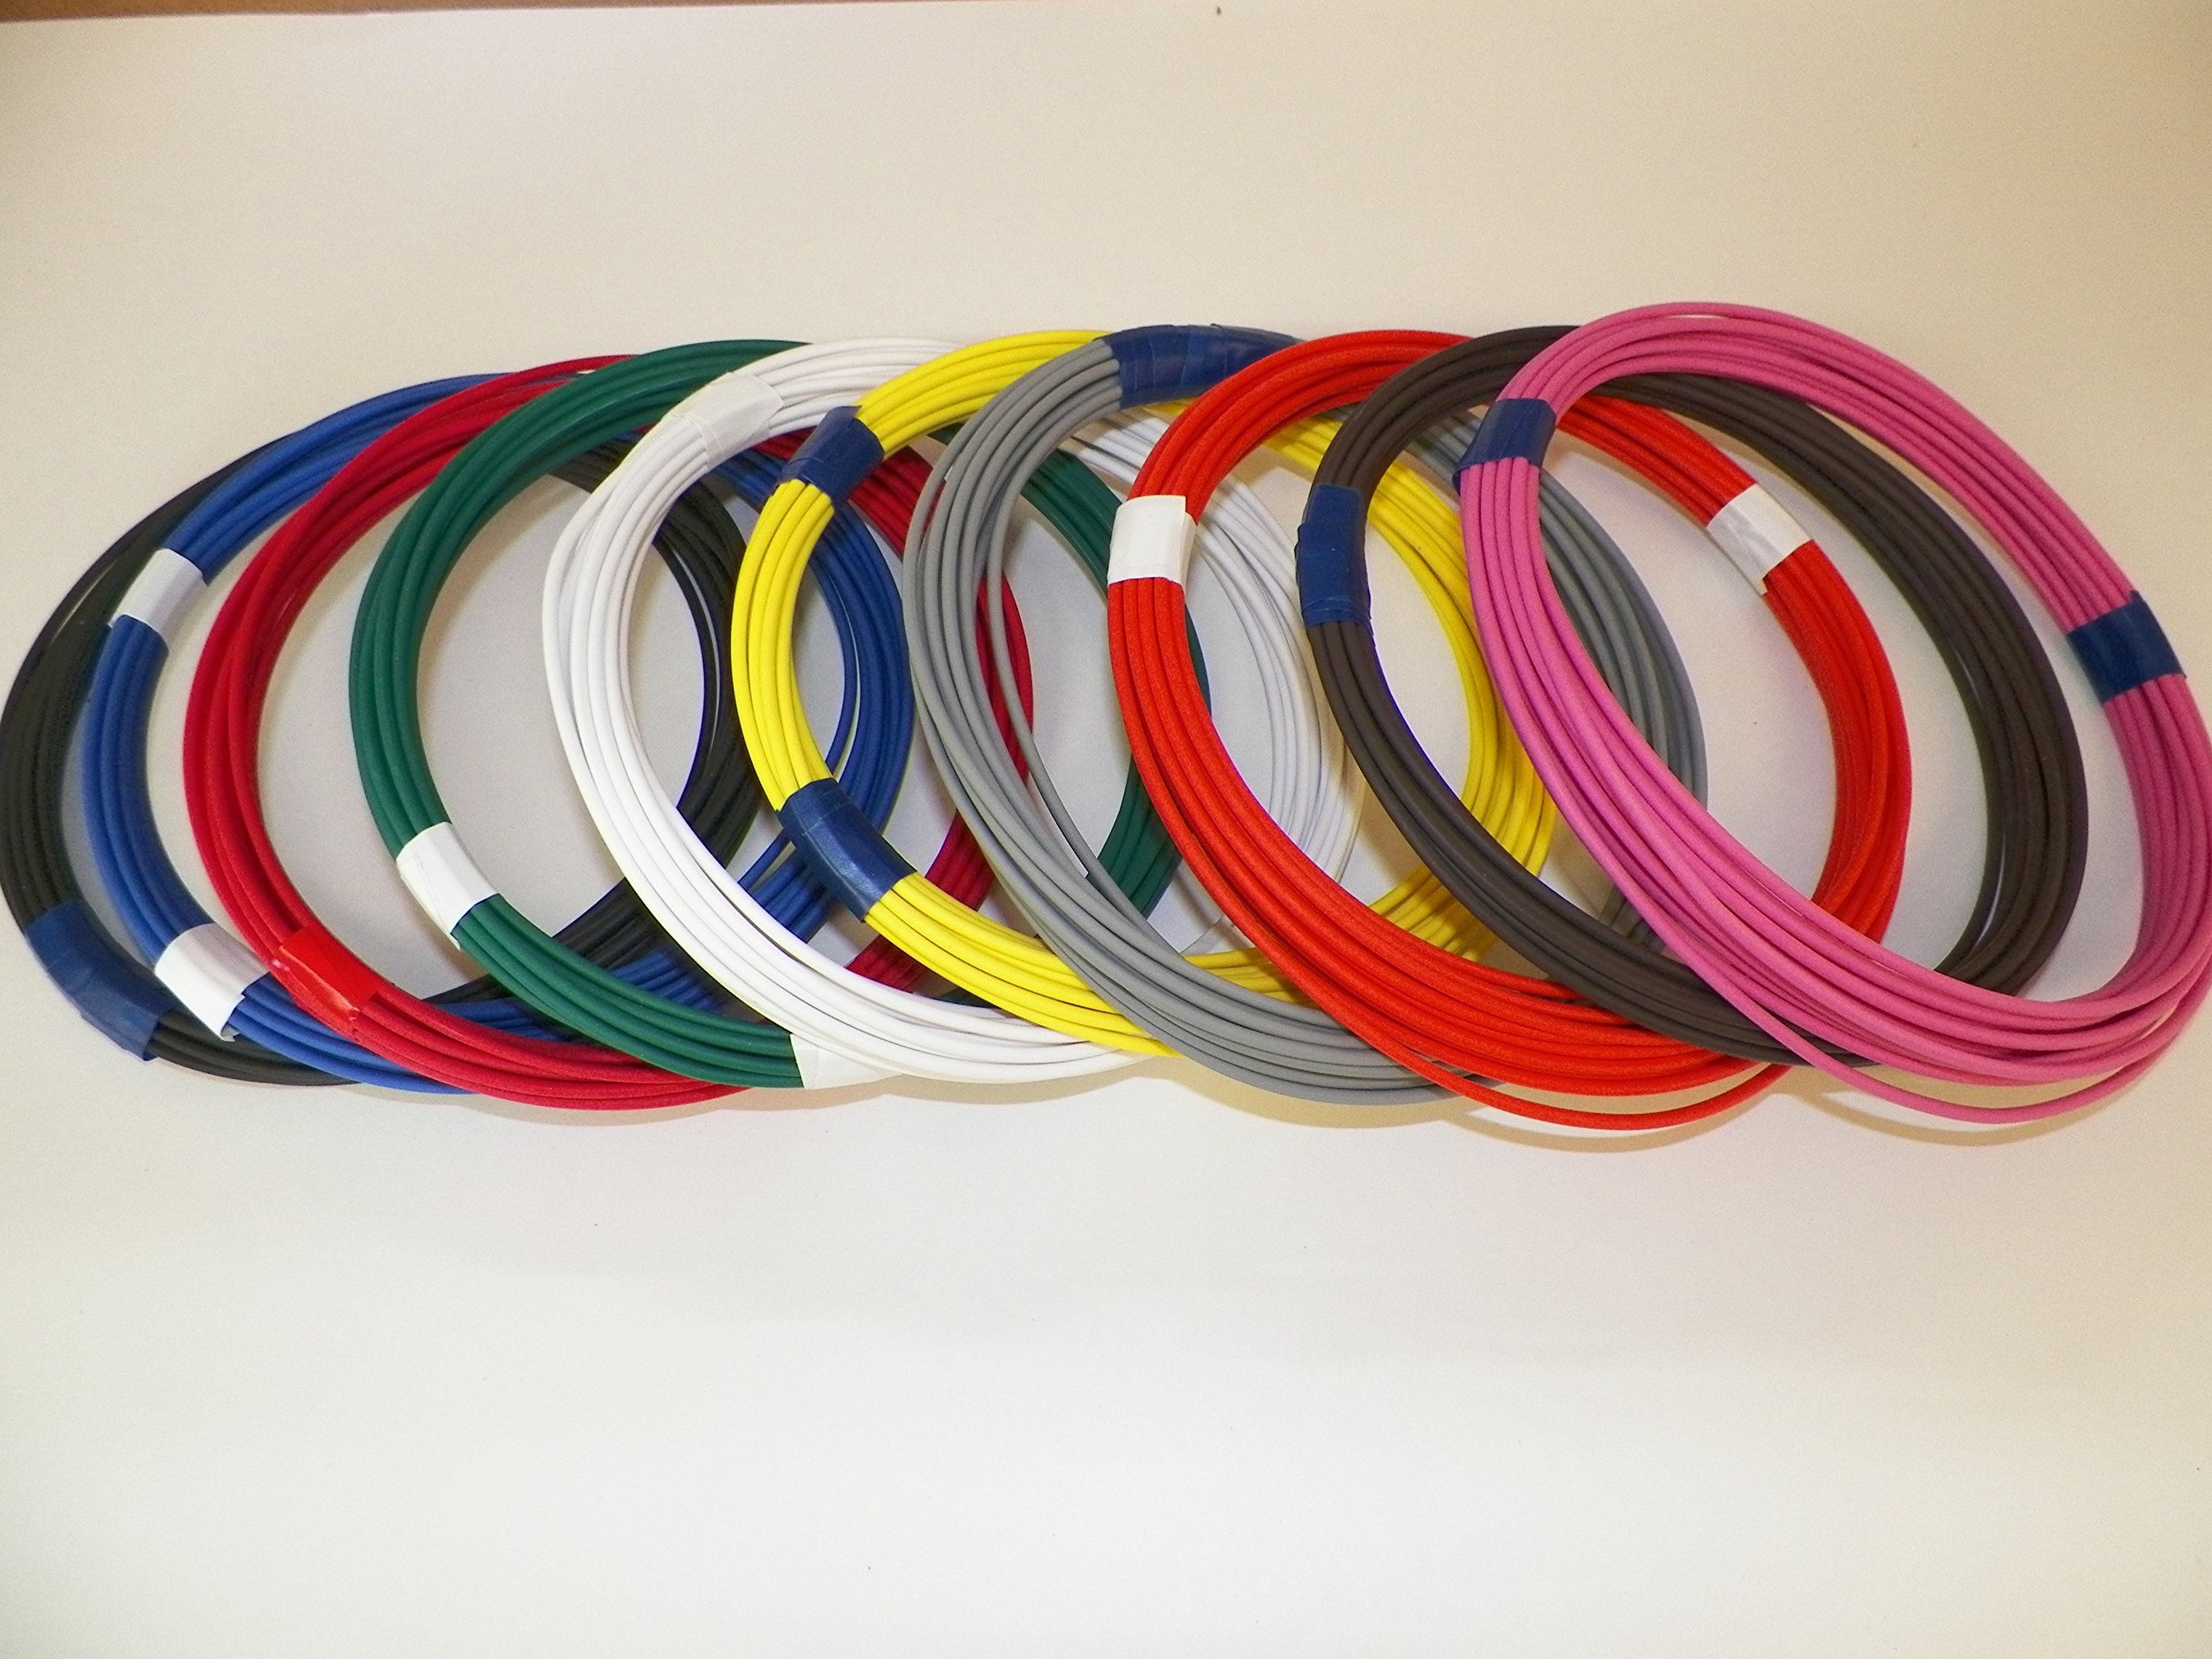 Automotive Copper Wire, TXL, 16 GA, AWG, GAUGE Truck, Motorcycle, RV, General Purpose. Order by 3pm EST Shipped Same Day (10 Colors 10' Each) (10 COLORS BY 25' EACH)